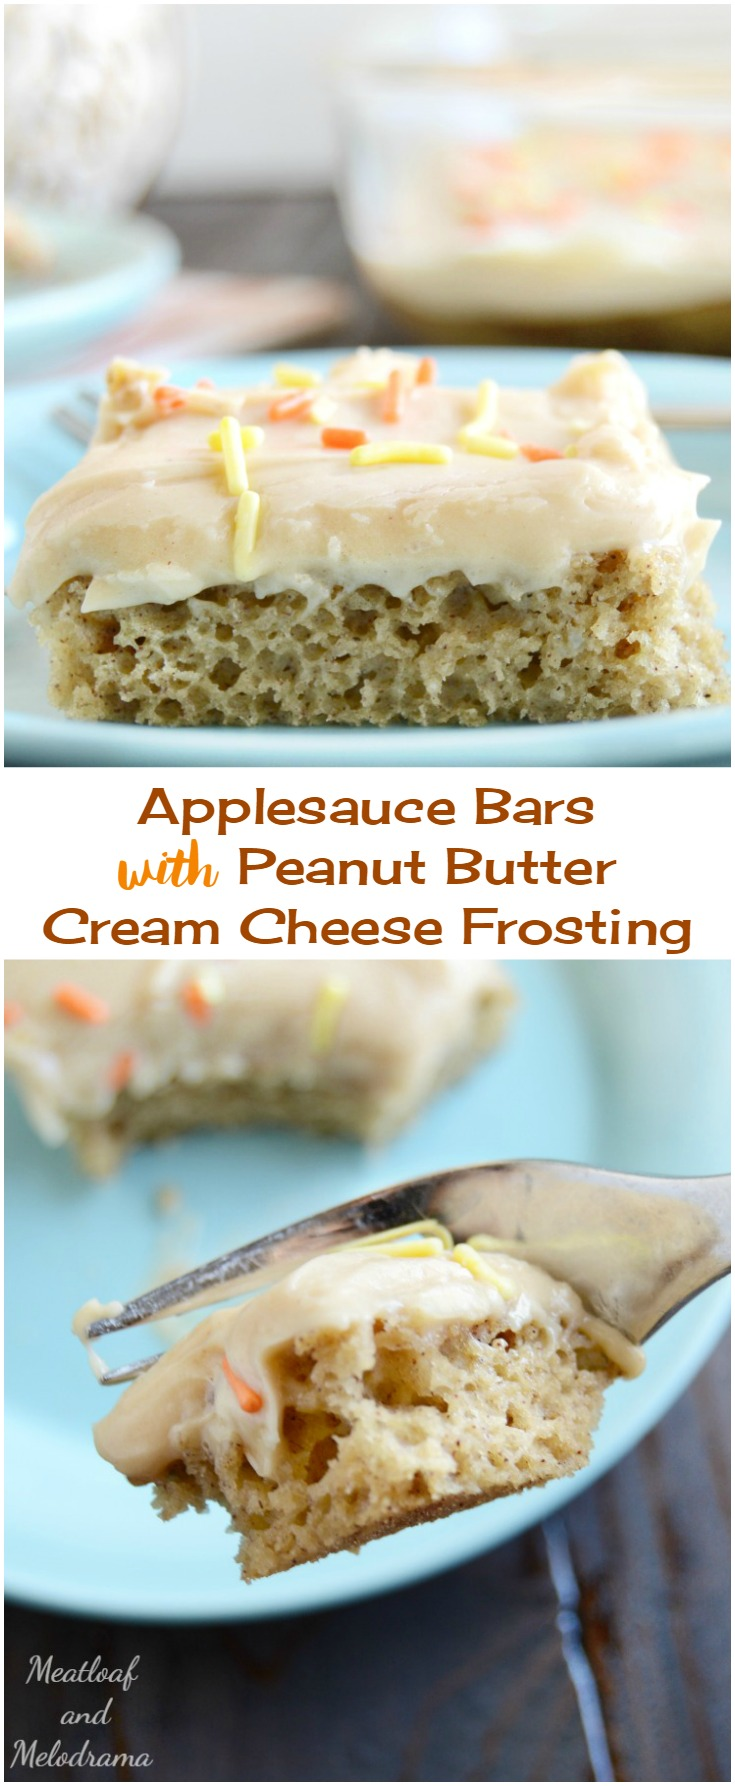 Easy Applesauce Bars with Peanute Butter Cream Cheese Frosting